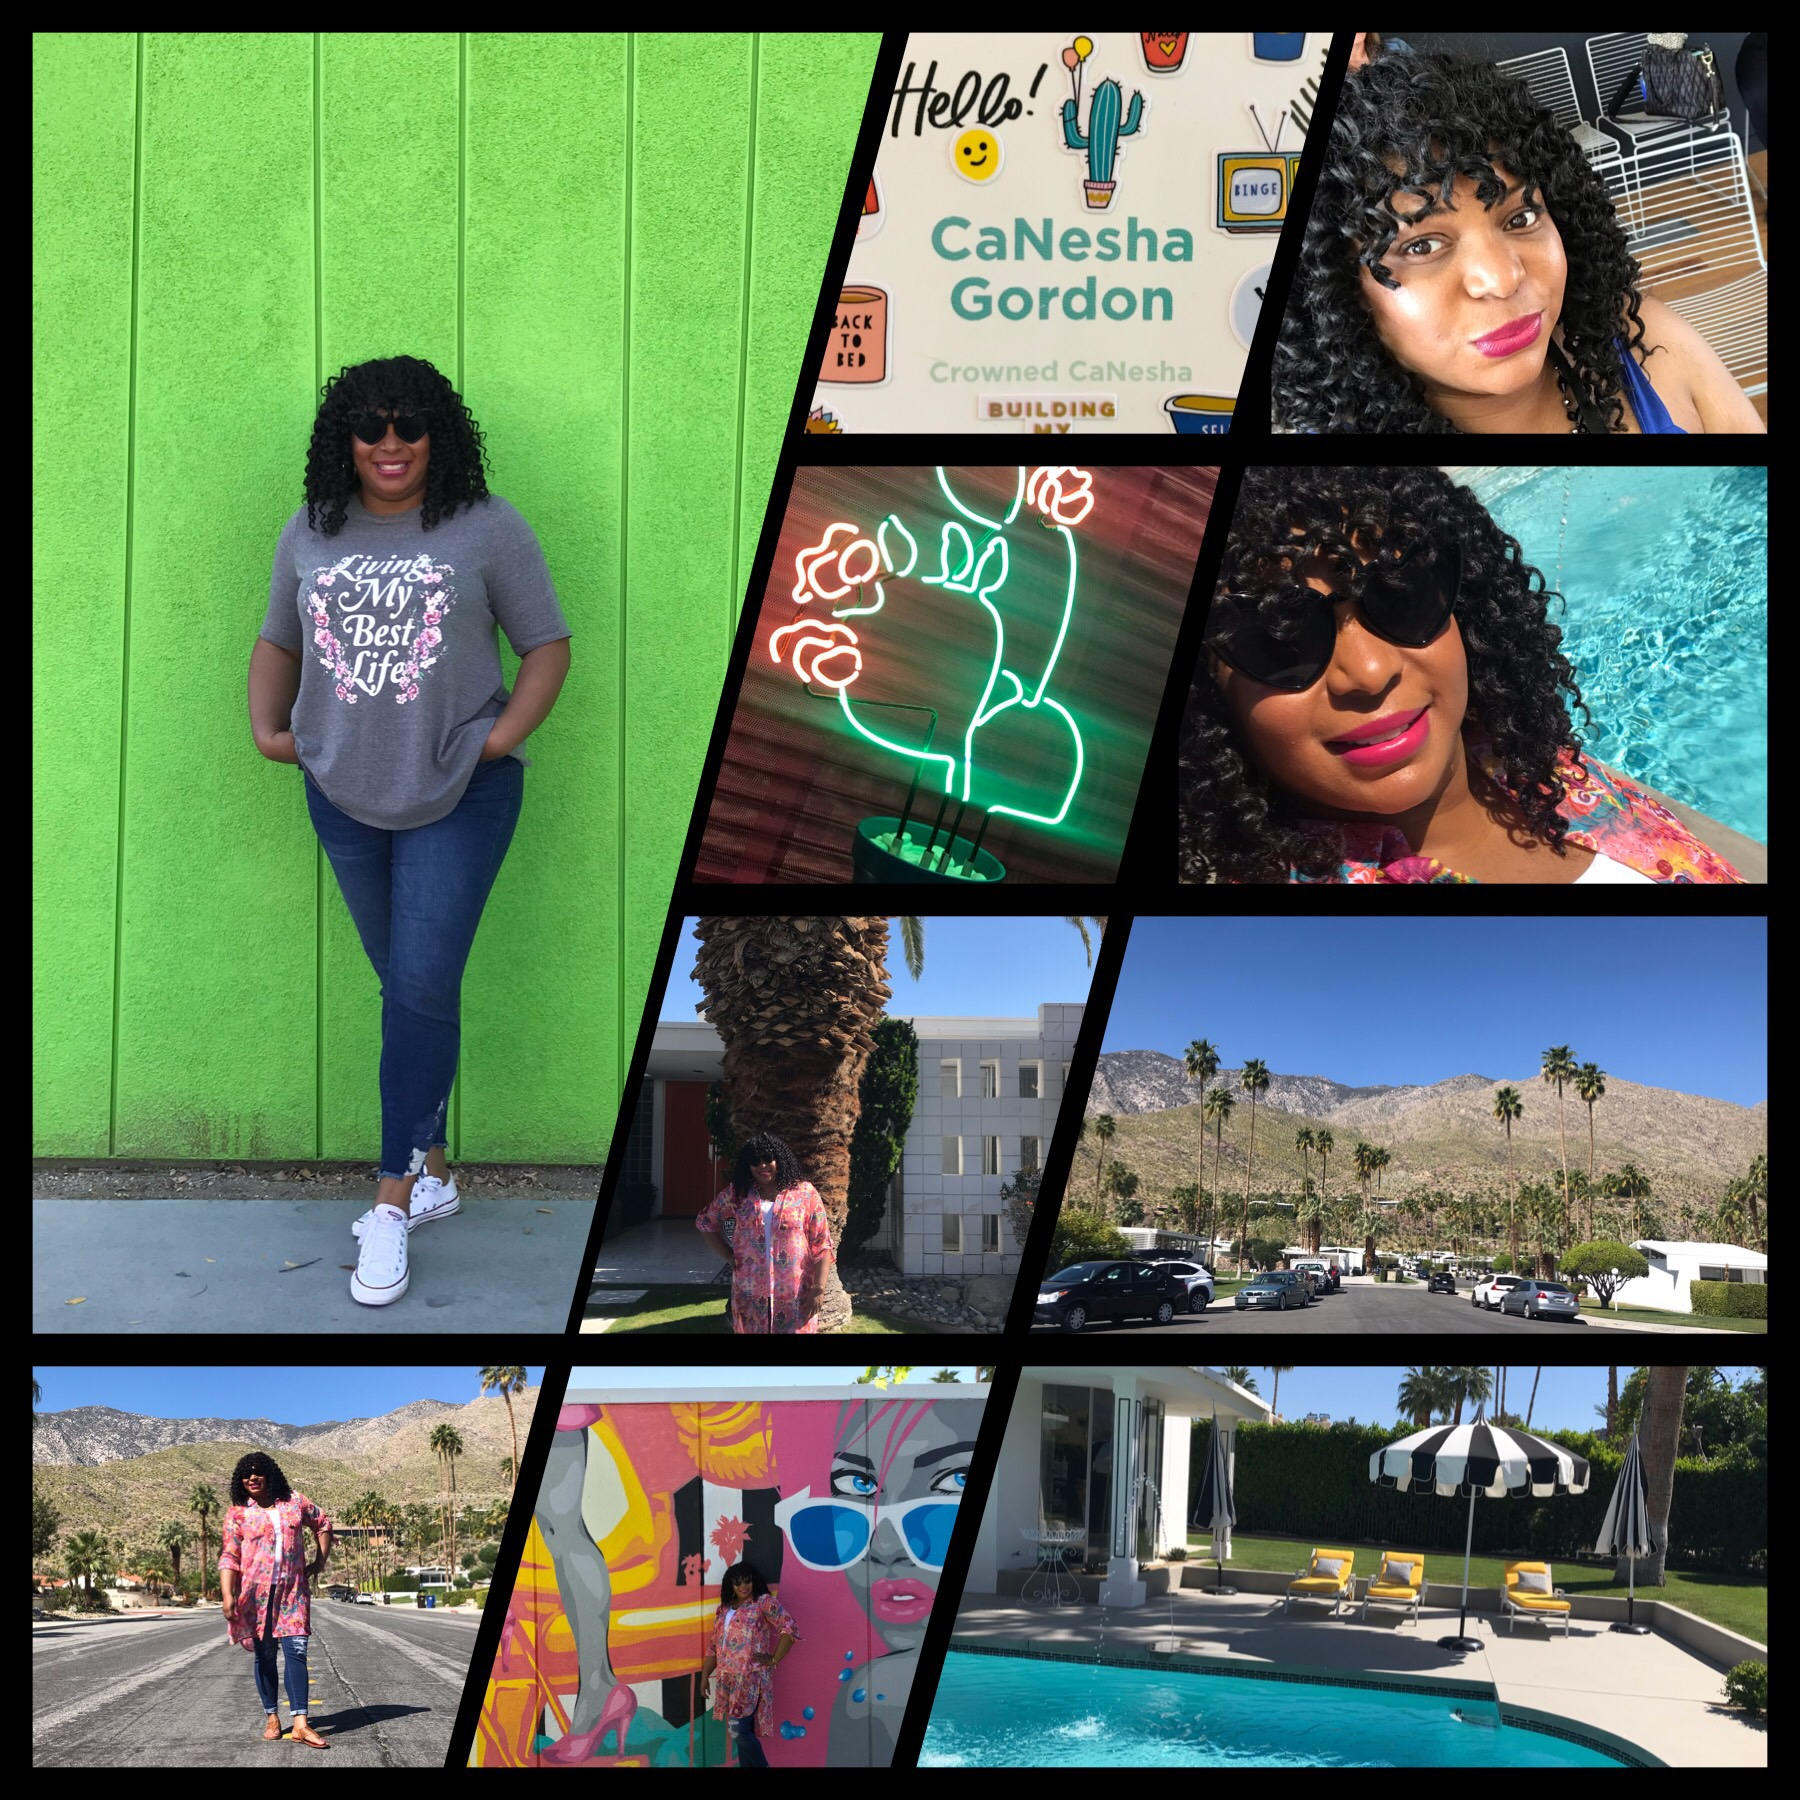 Living my best life. This is my 40's. #altsummit #palmspringsca #lanebryant #jessicalondonstyle #jessicalondon #imwithjessica